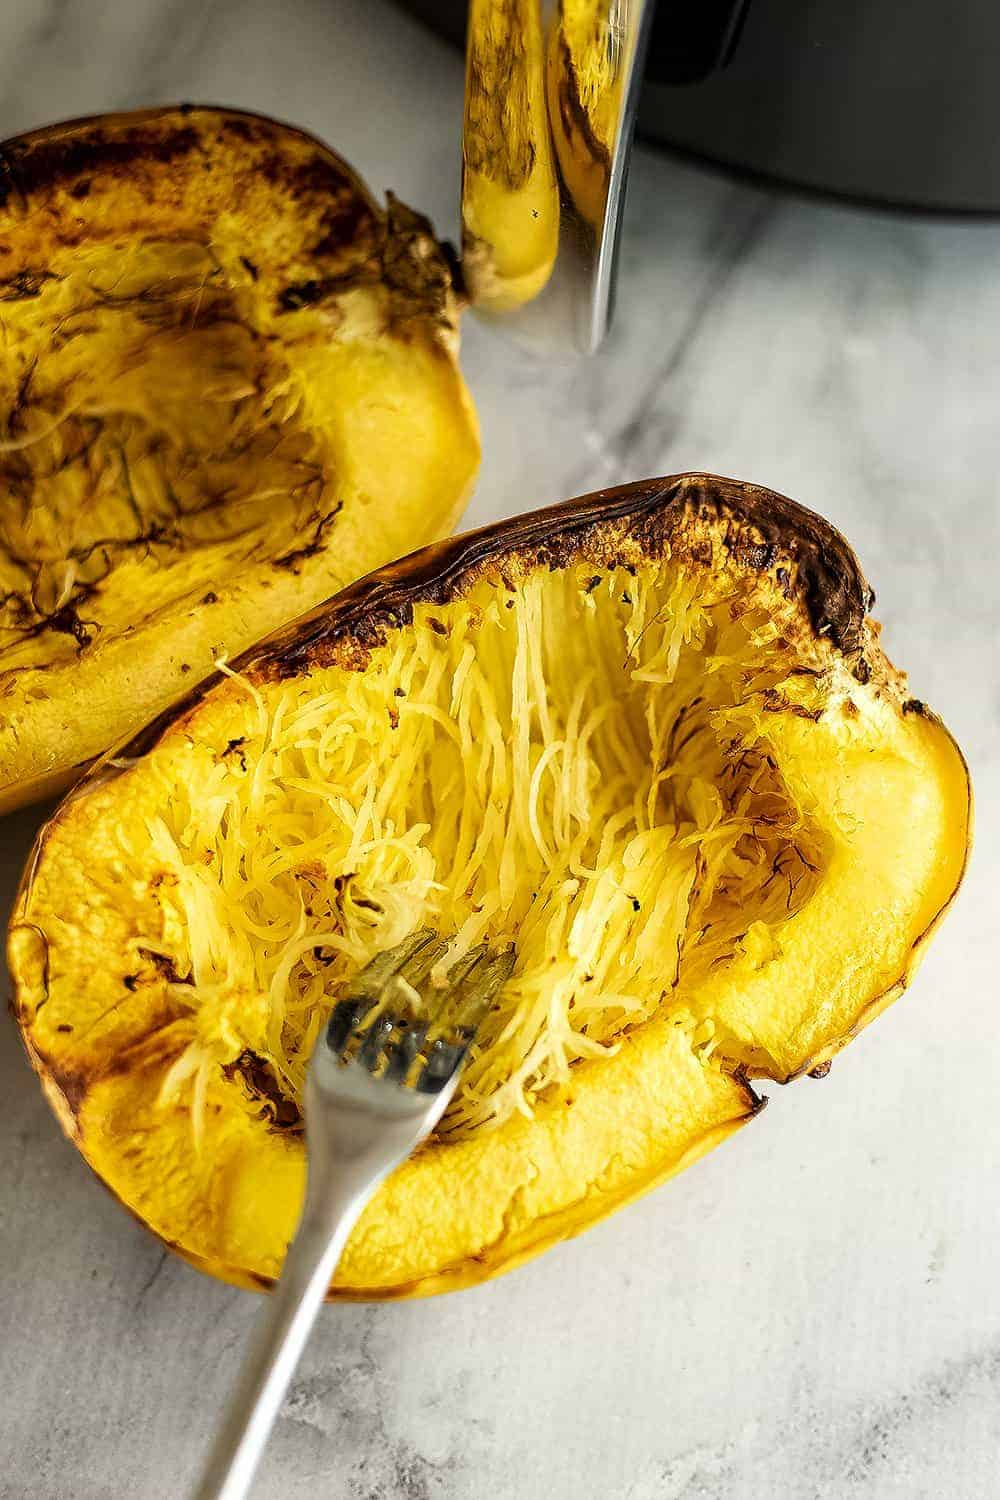 Fork dragging across spaghetti squash to release noodles.